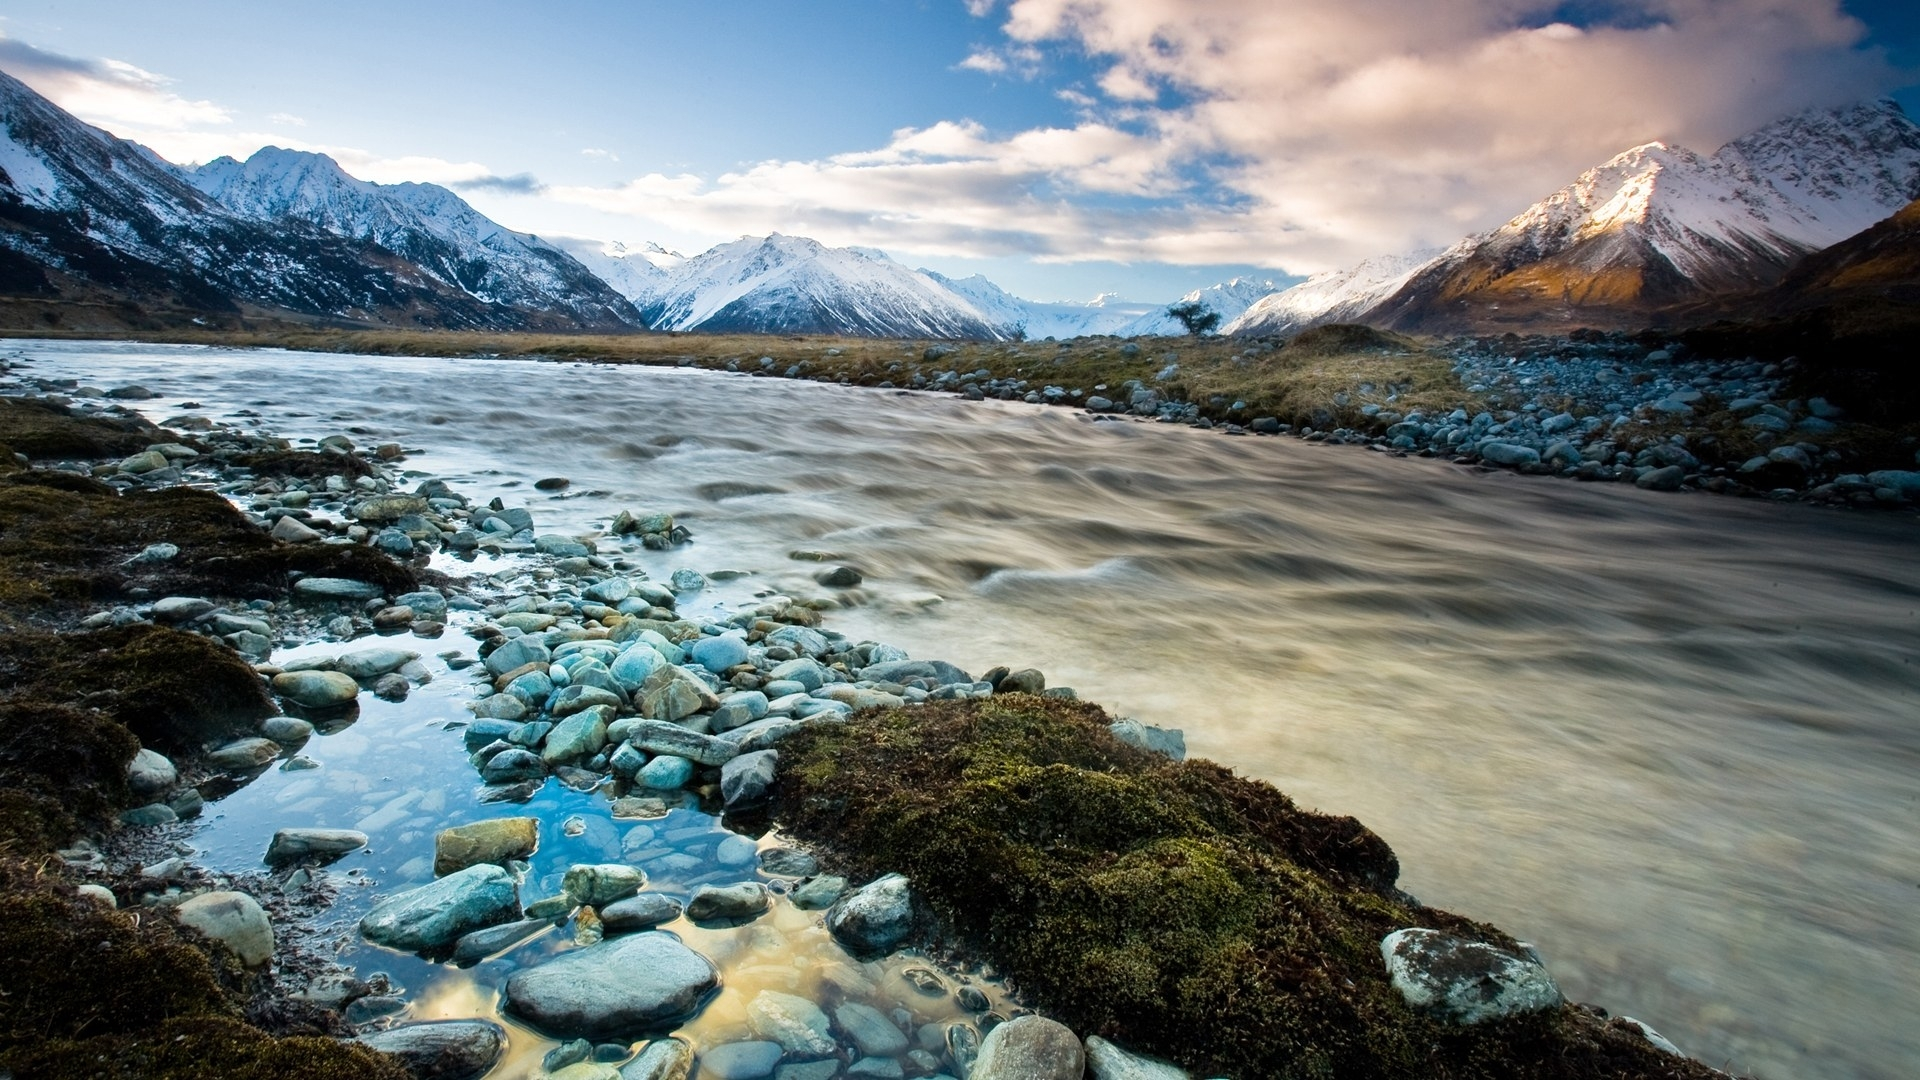 10 Latest New Zealand Desktop Wallpapers FULL HD 1920×1080 For PC Desktop